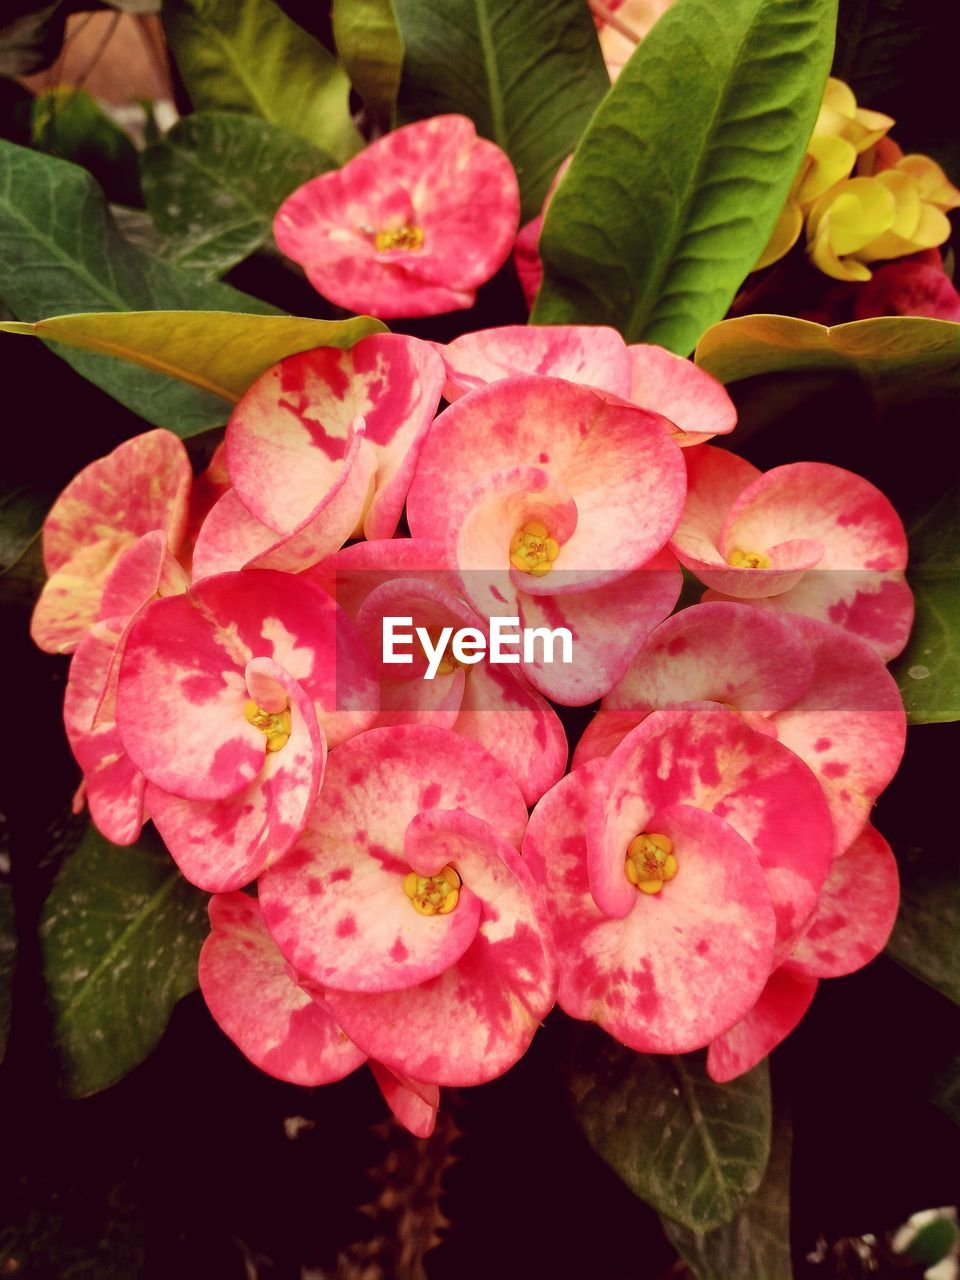 flower, beauty in nature, growth, petal, nature, fragility, plant, pink color, freshness, no people, flower head, leaf, close-up, outdoors, day, blooming